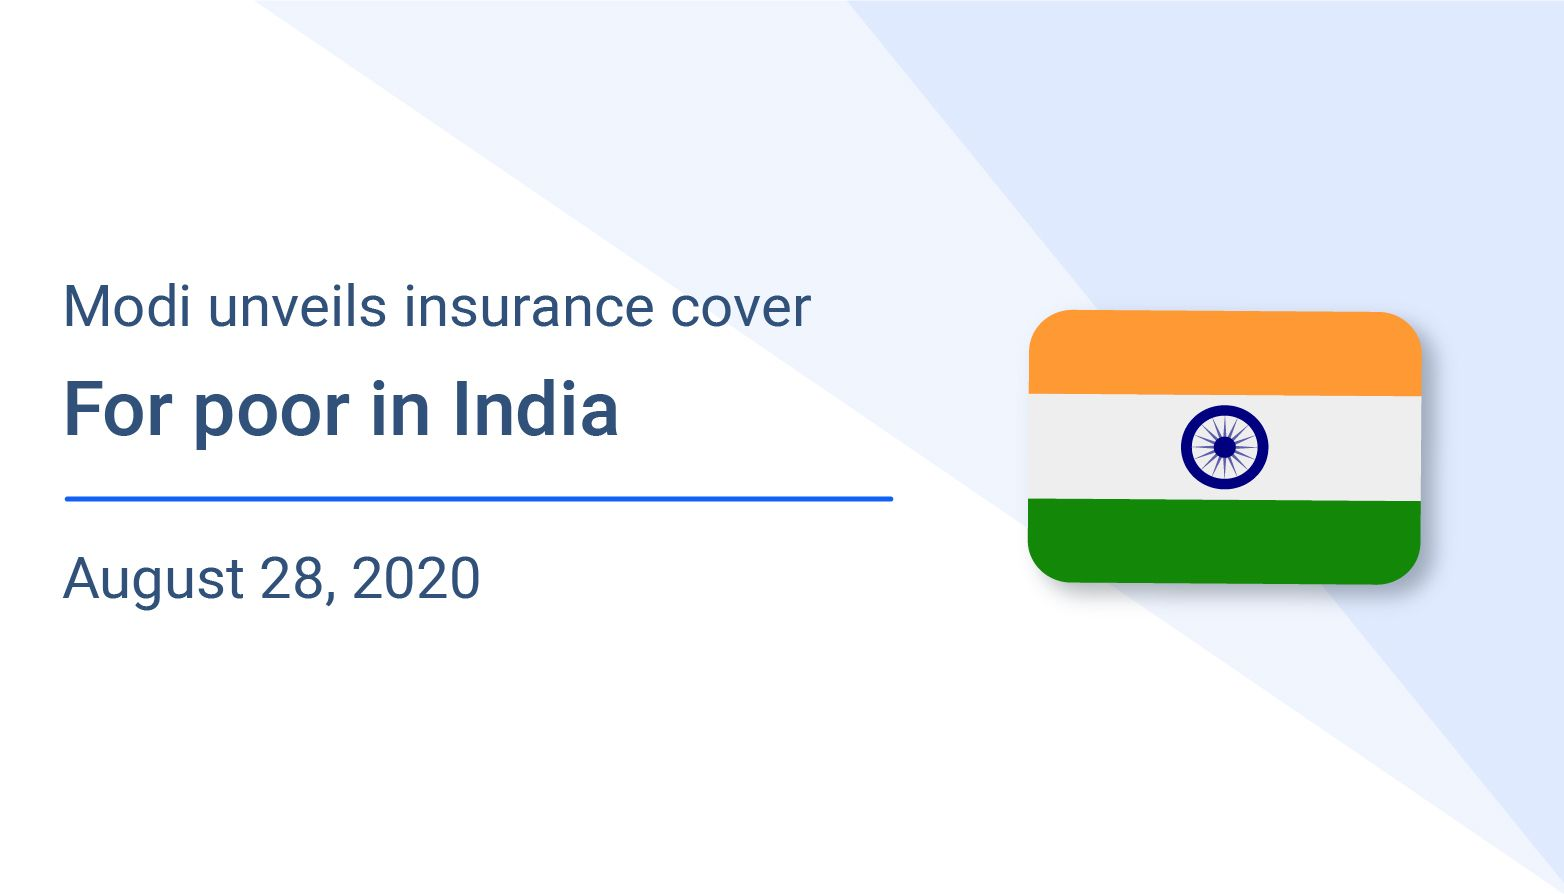 Modi unveils insurance cover for poor in India